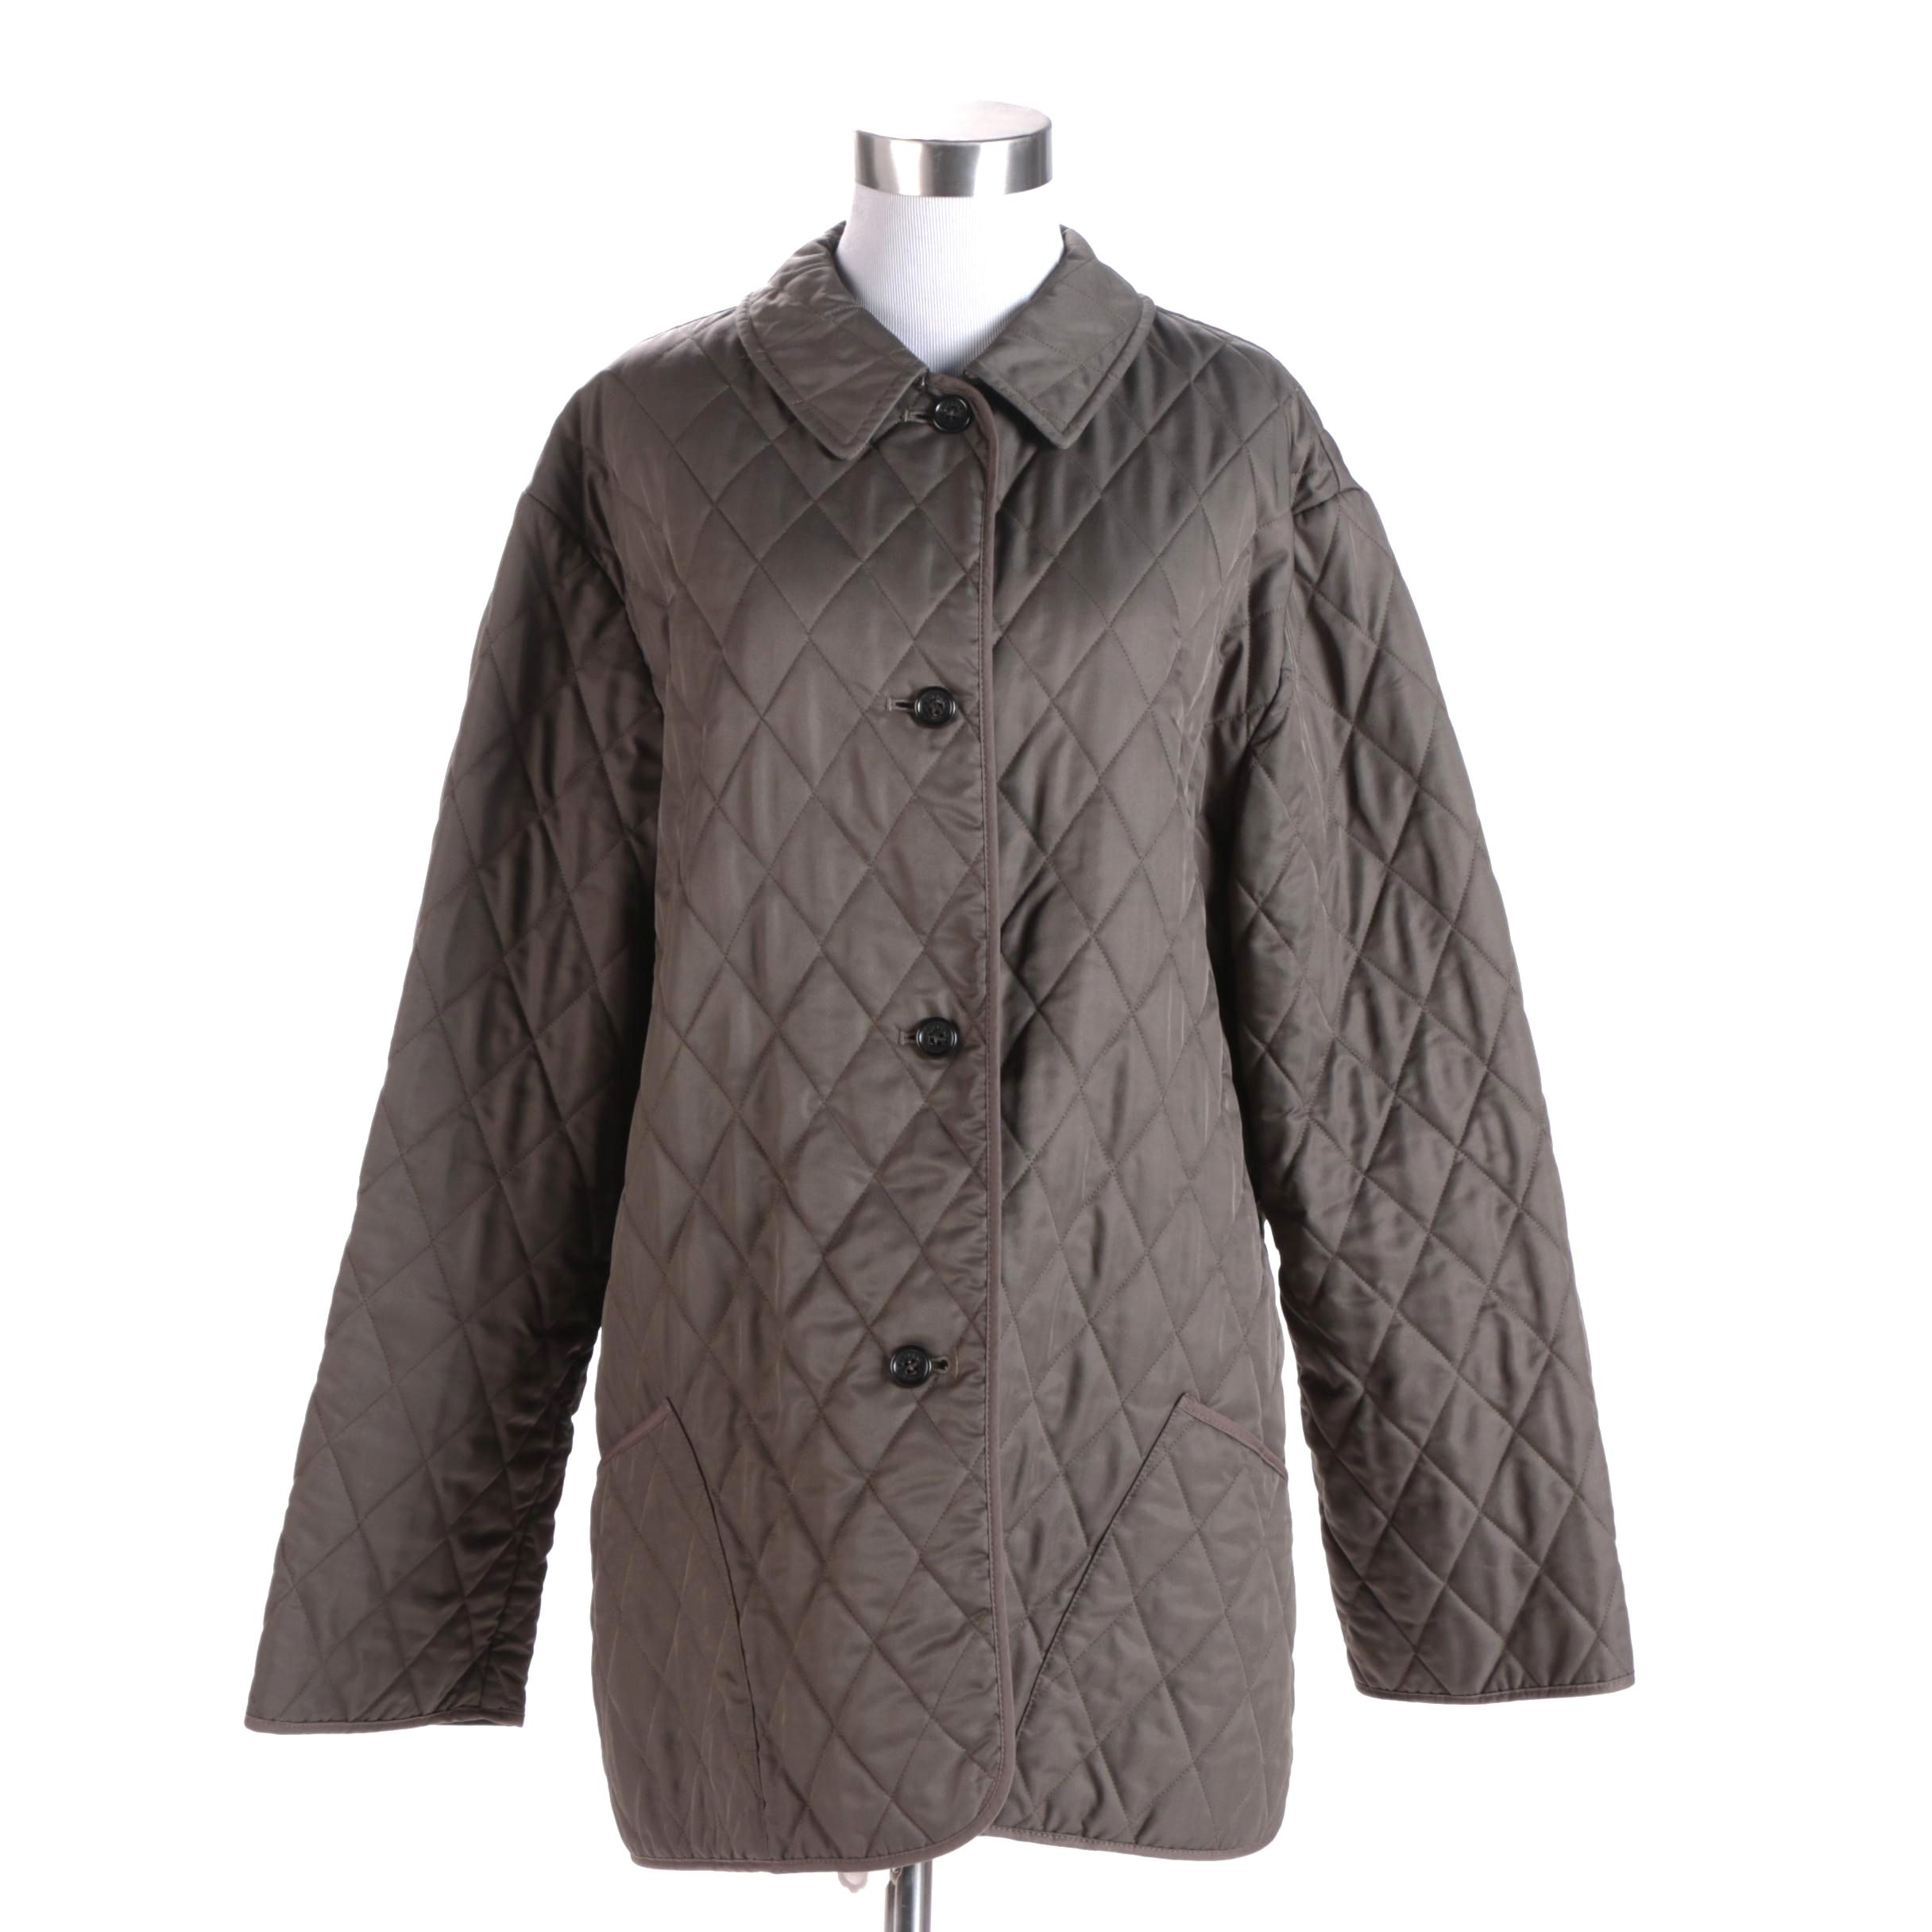 Women's Burberry London Dark Olive Green Quilted Jacket